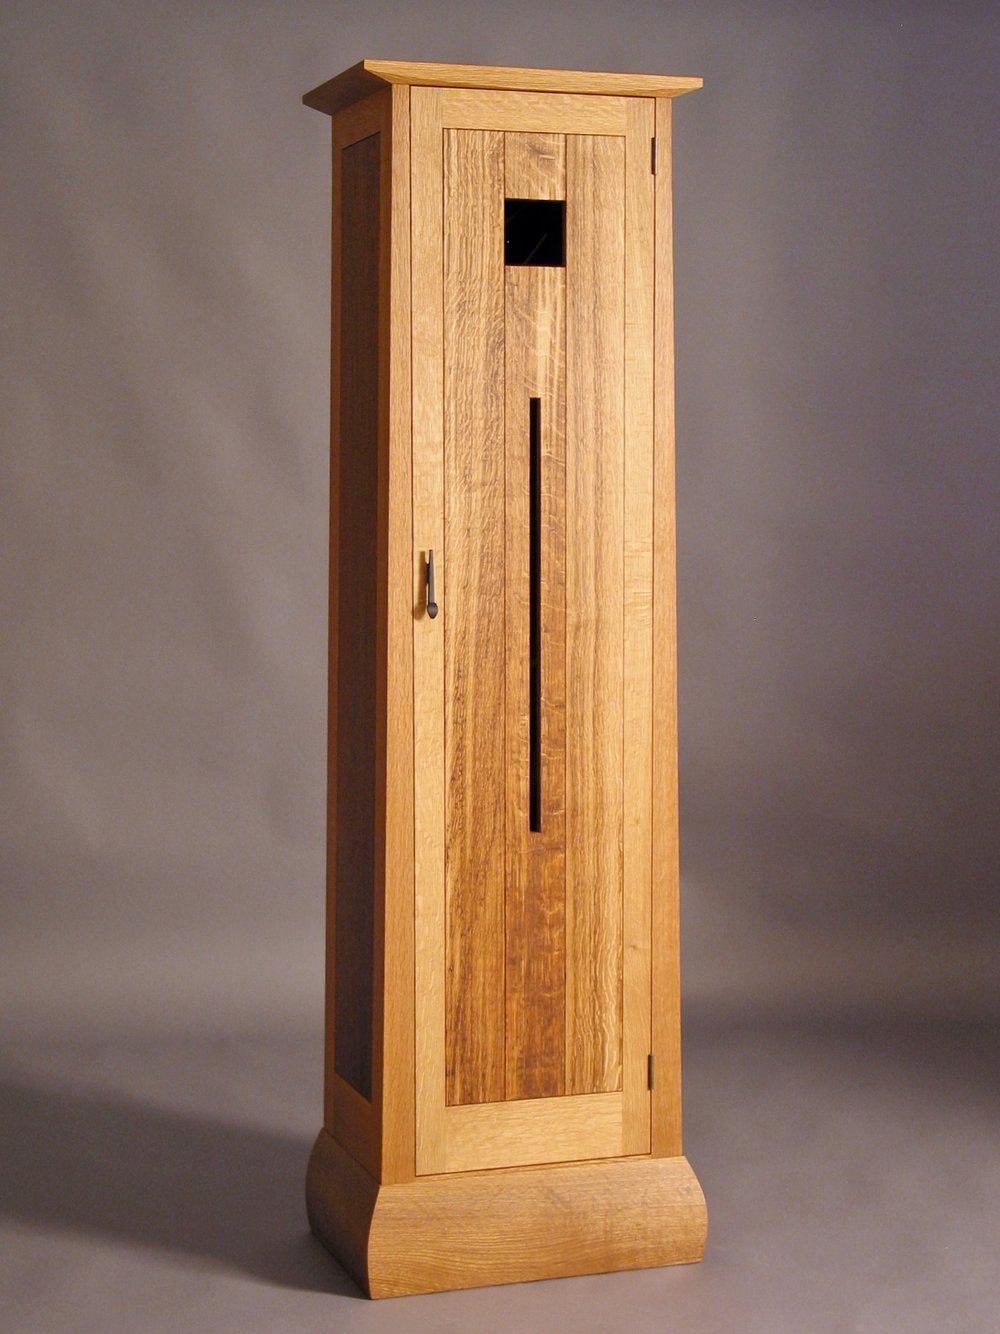 Centennial- white oak, english brown oak, bog oak